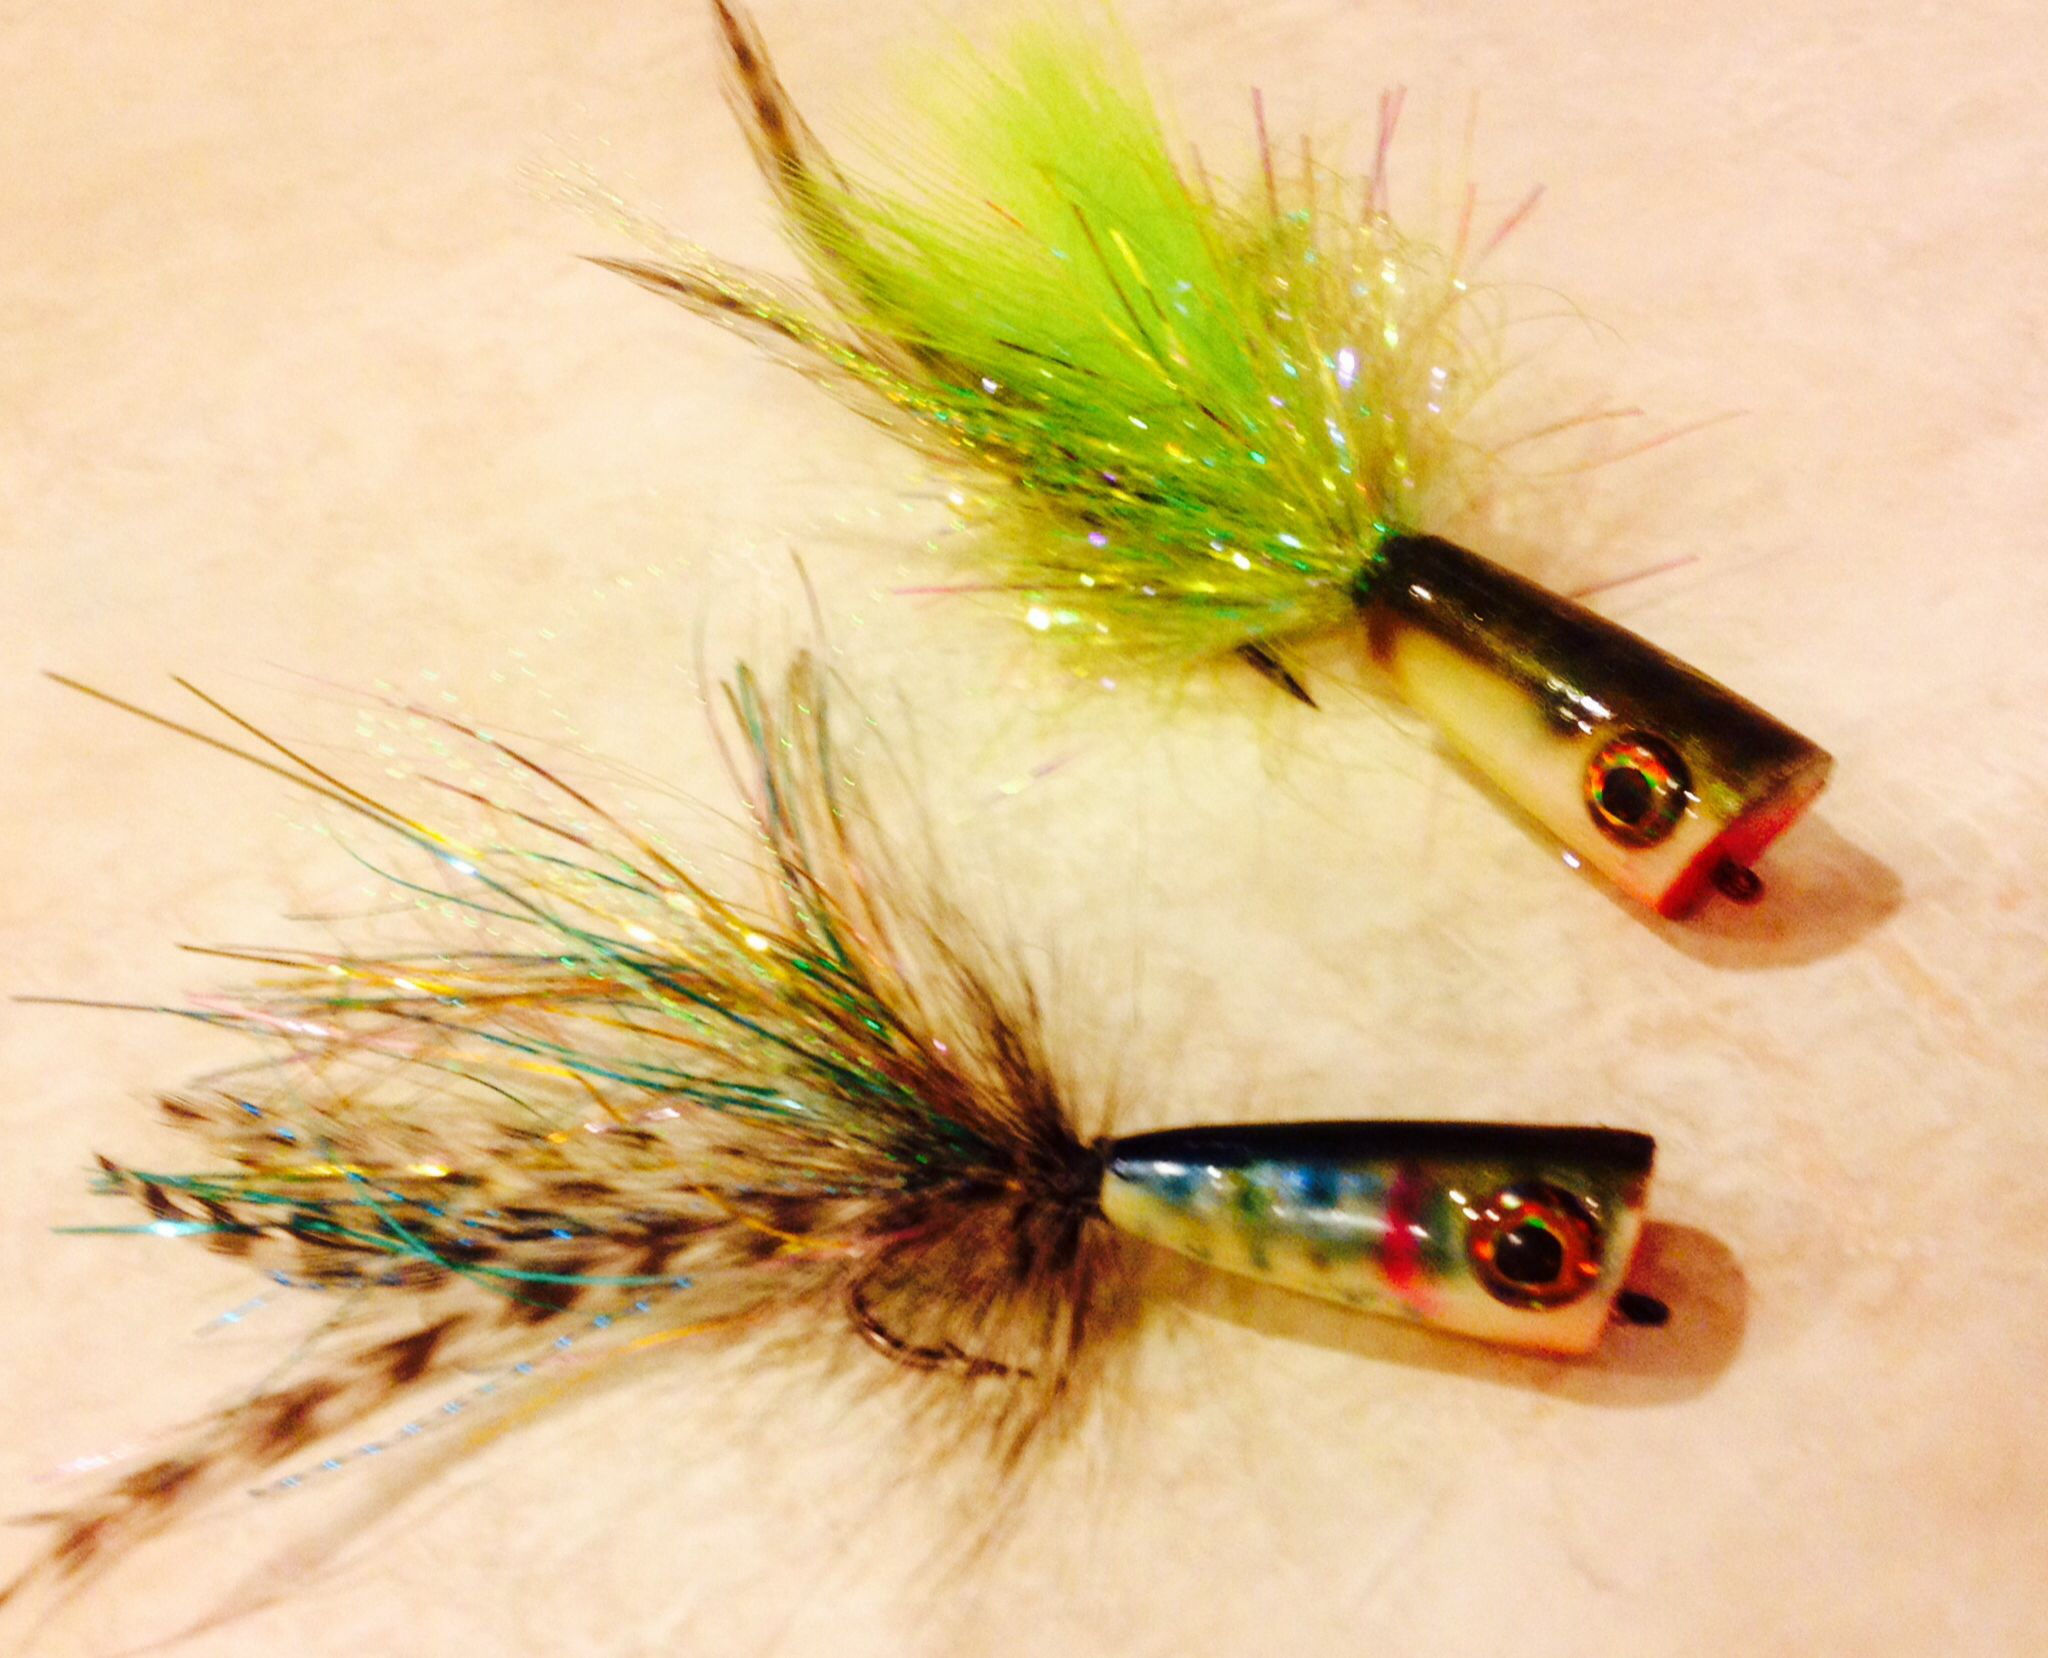 My homemade bass poppers fishing pinterest homemade for Fishing poppers for bass